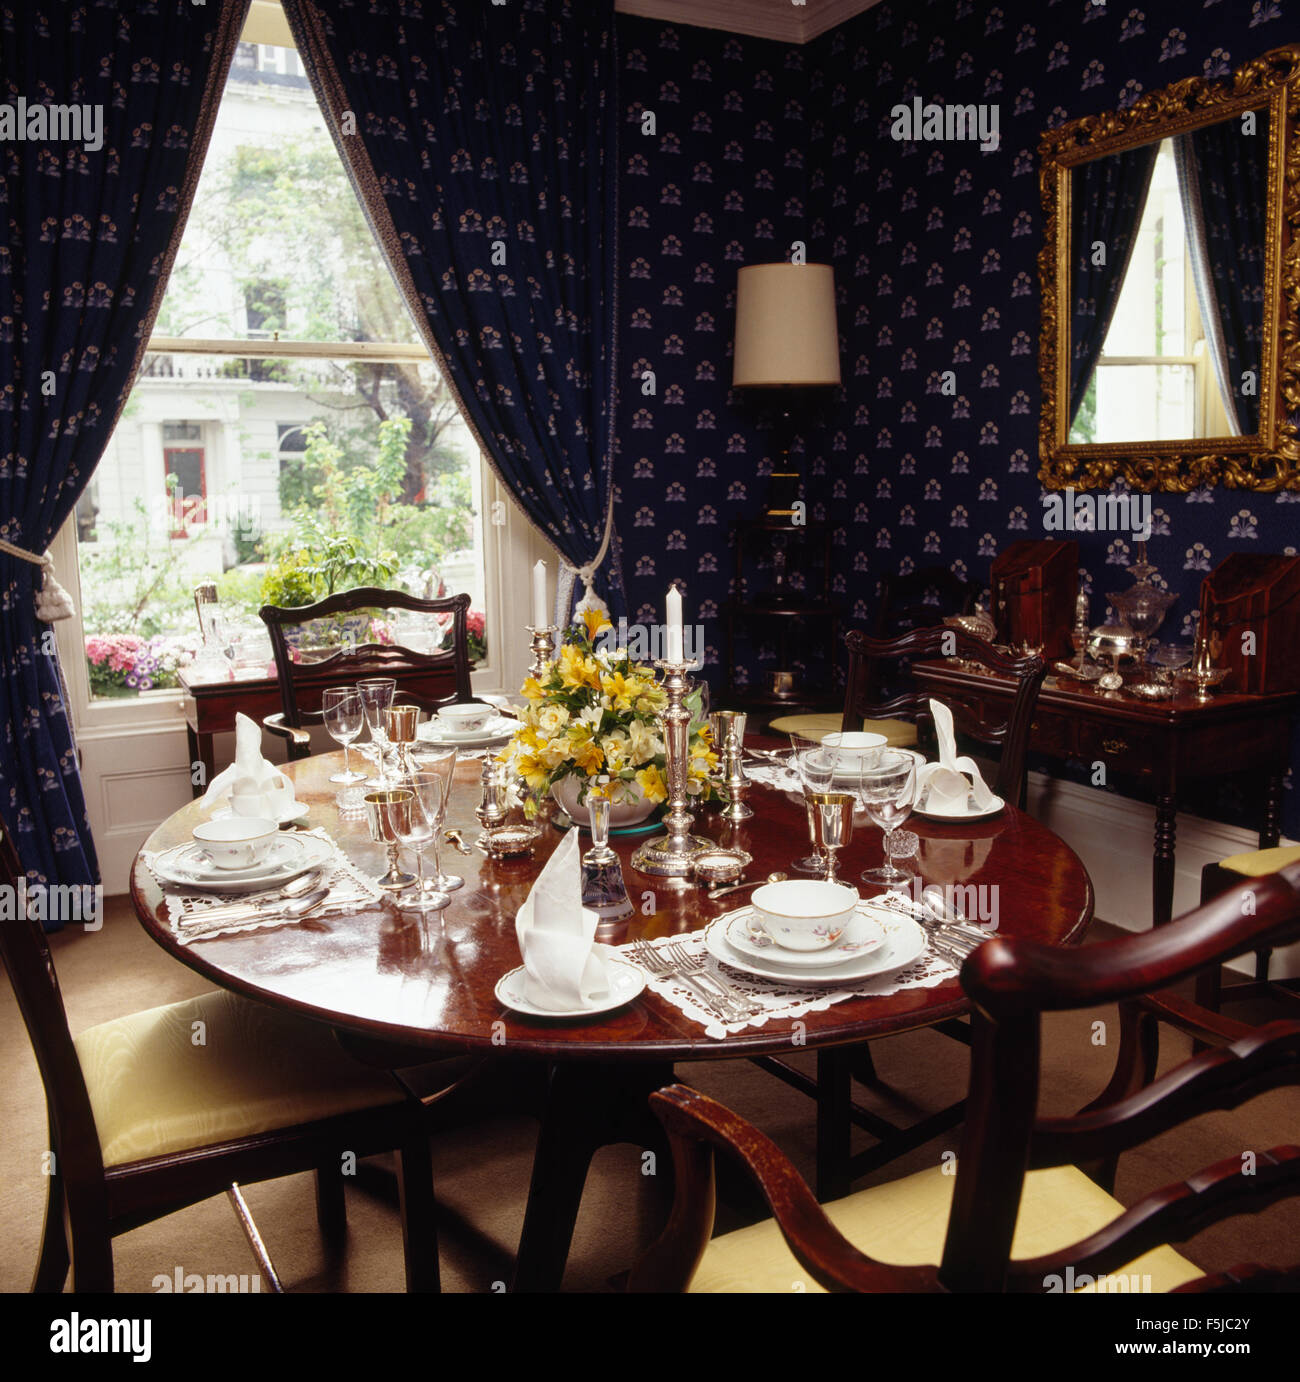 Dark Blue Wallpaper And Matching Curtains In Eighties Dining Room With Table Set For Lunch